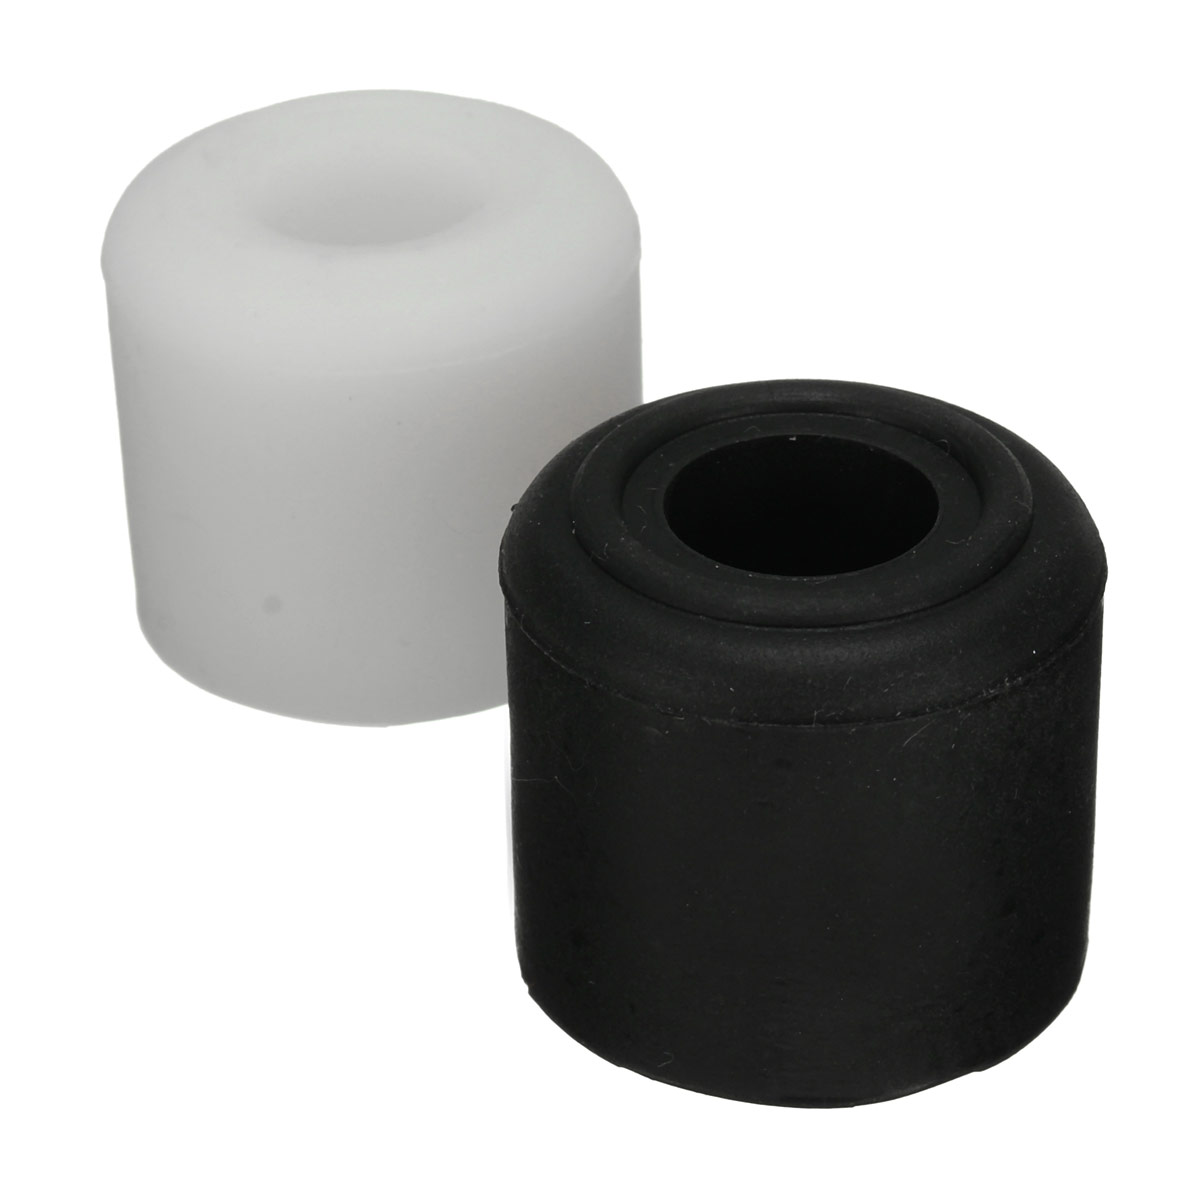 28mm rubber door stop stopper cylinder jam wedge door floor holder black white - Door stoppers rubber ...